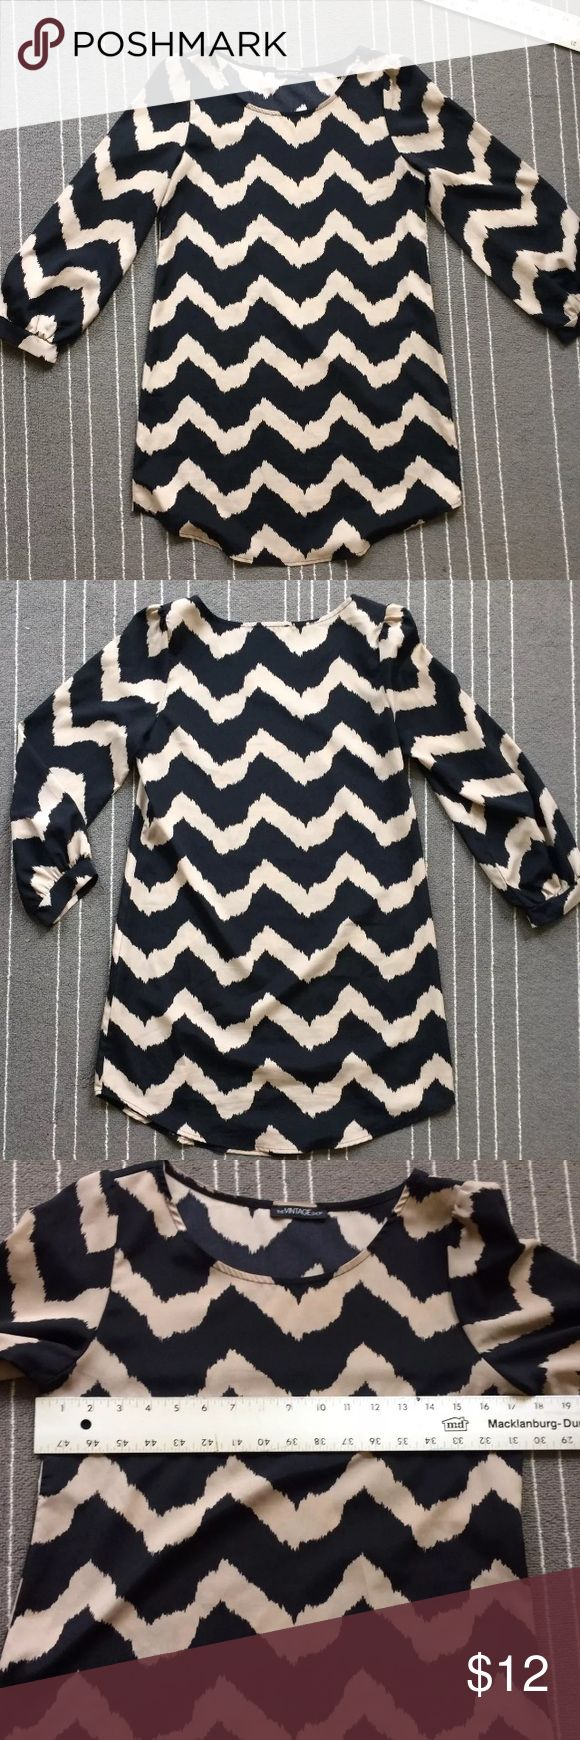 "The Vintage Shop black and taupe chevron top Excellent condition chevron pattern dress or top size small from The Vintage Shop.  Unlined polyester has long sleeves puff hem sleeves.  Measures flat approximately 18"" across chest and 32"" lengthwise. The Vintage Shop Tops Tunics"